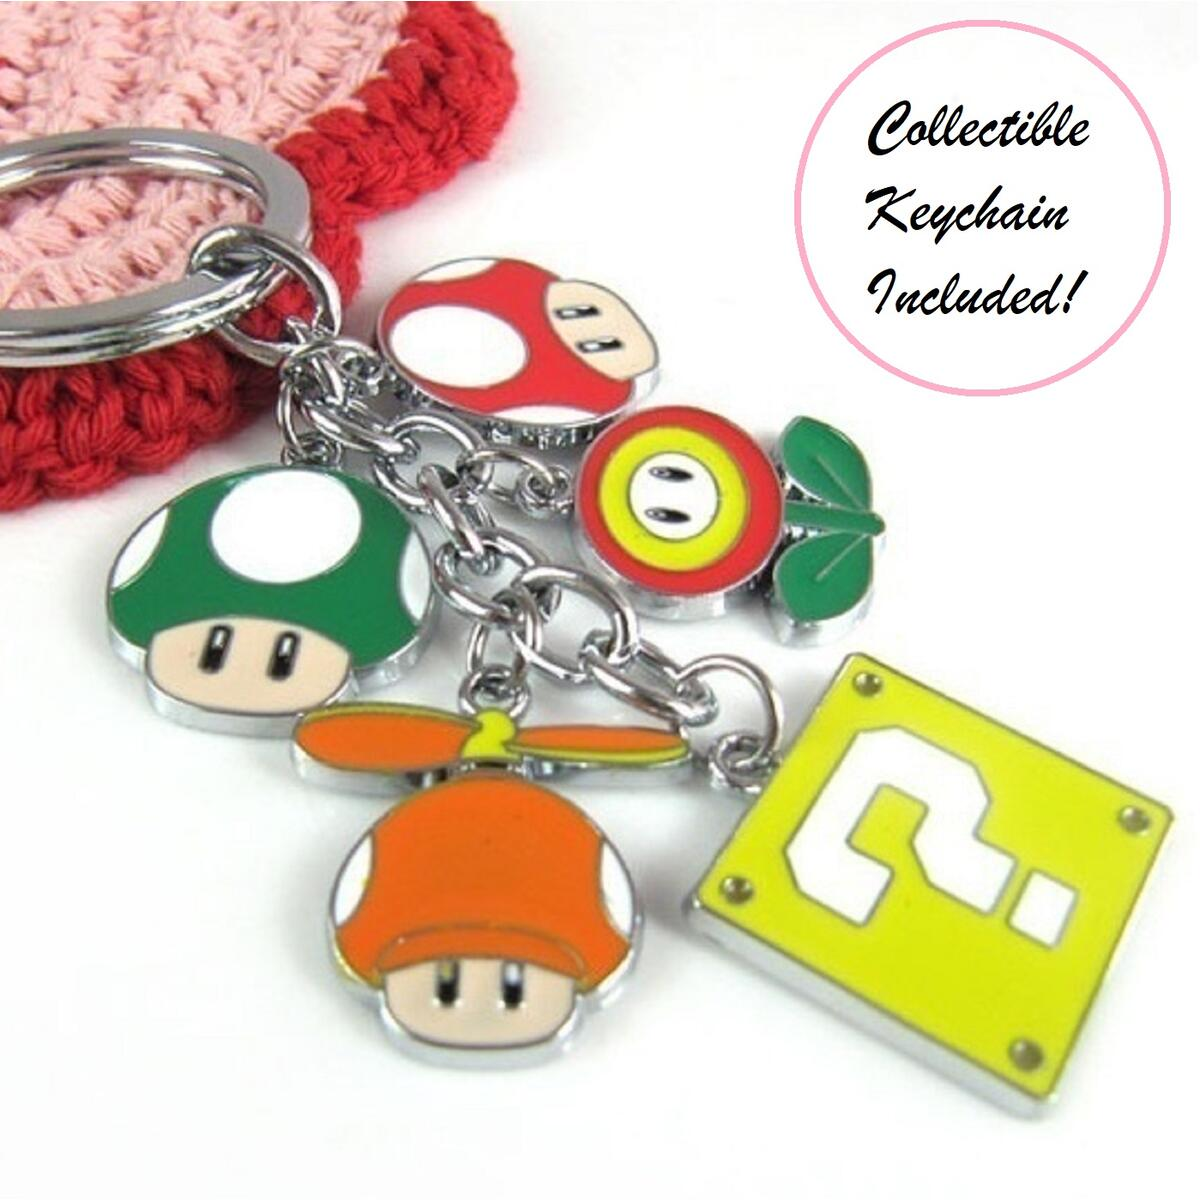 PXP3 Handheld Portable Game Console with 2 game cartridges Mario Keychain